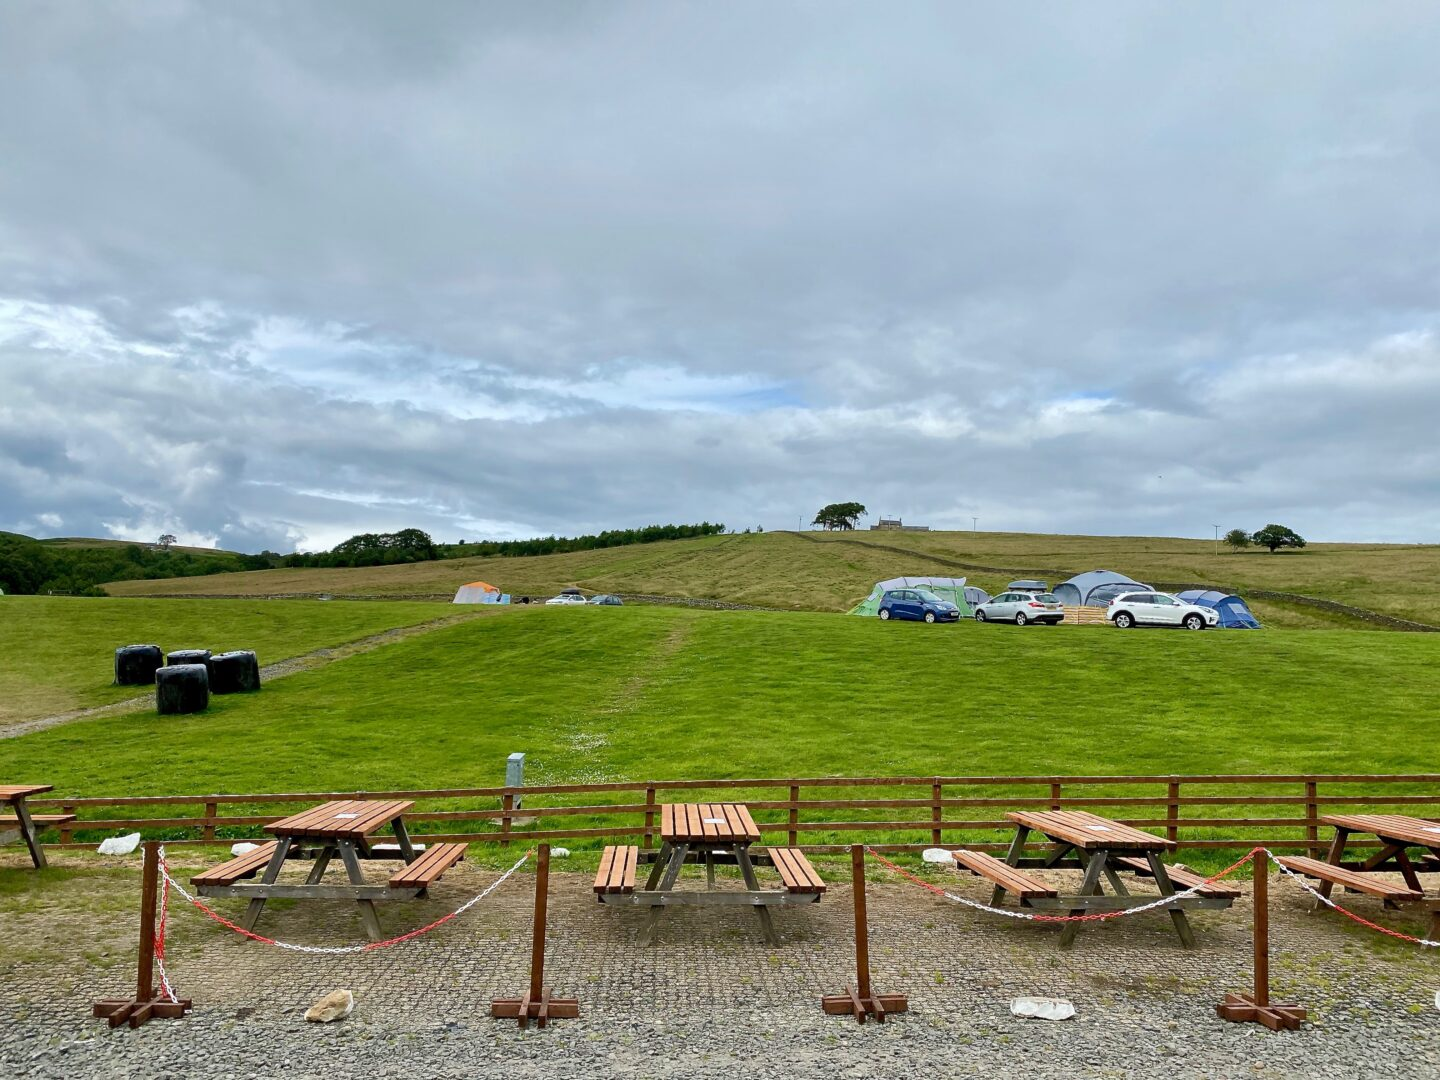 4 picnic tables at the Boe Rigg campsite